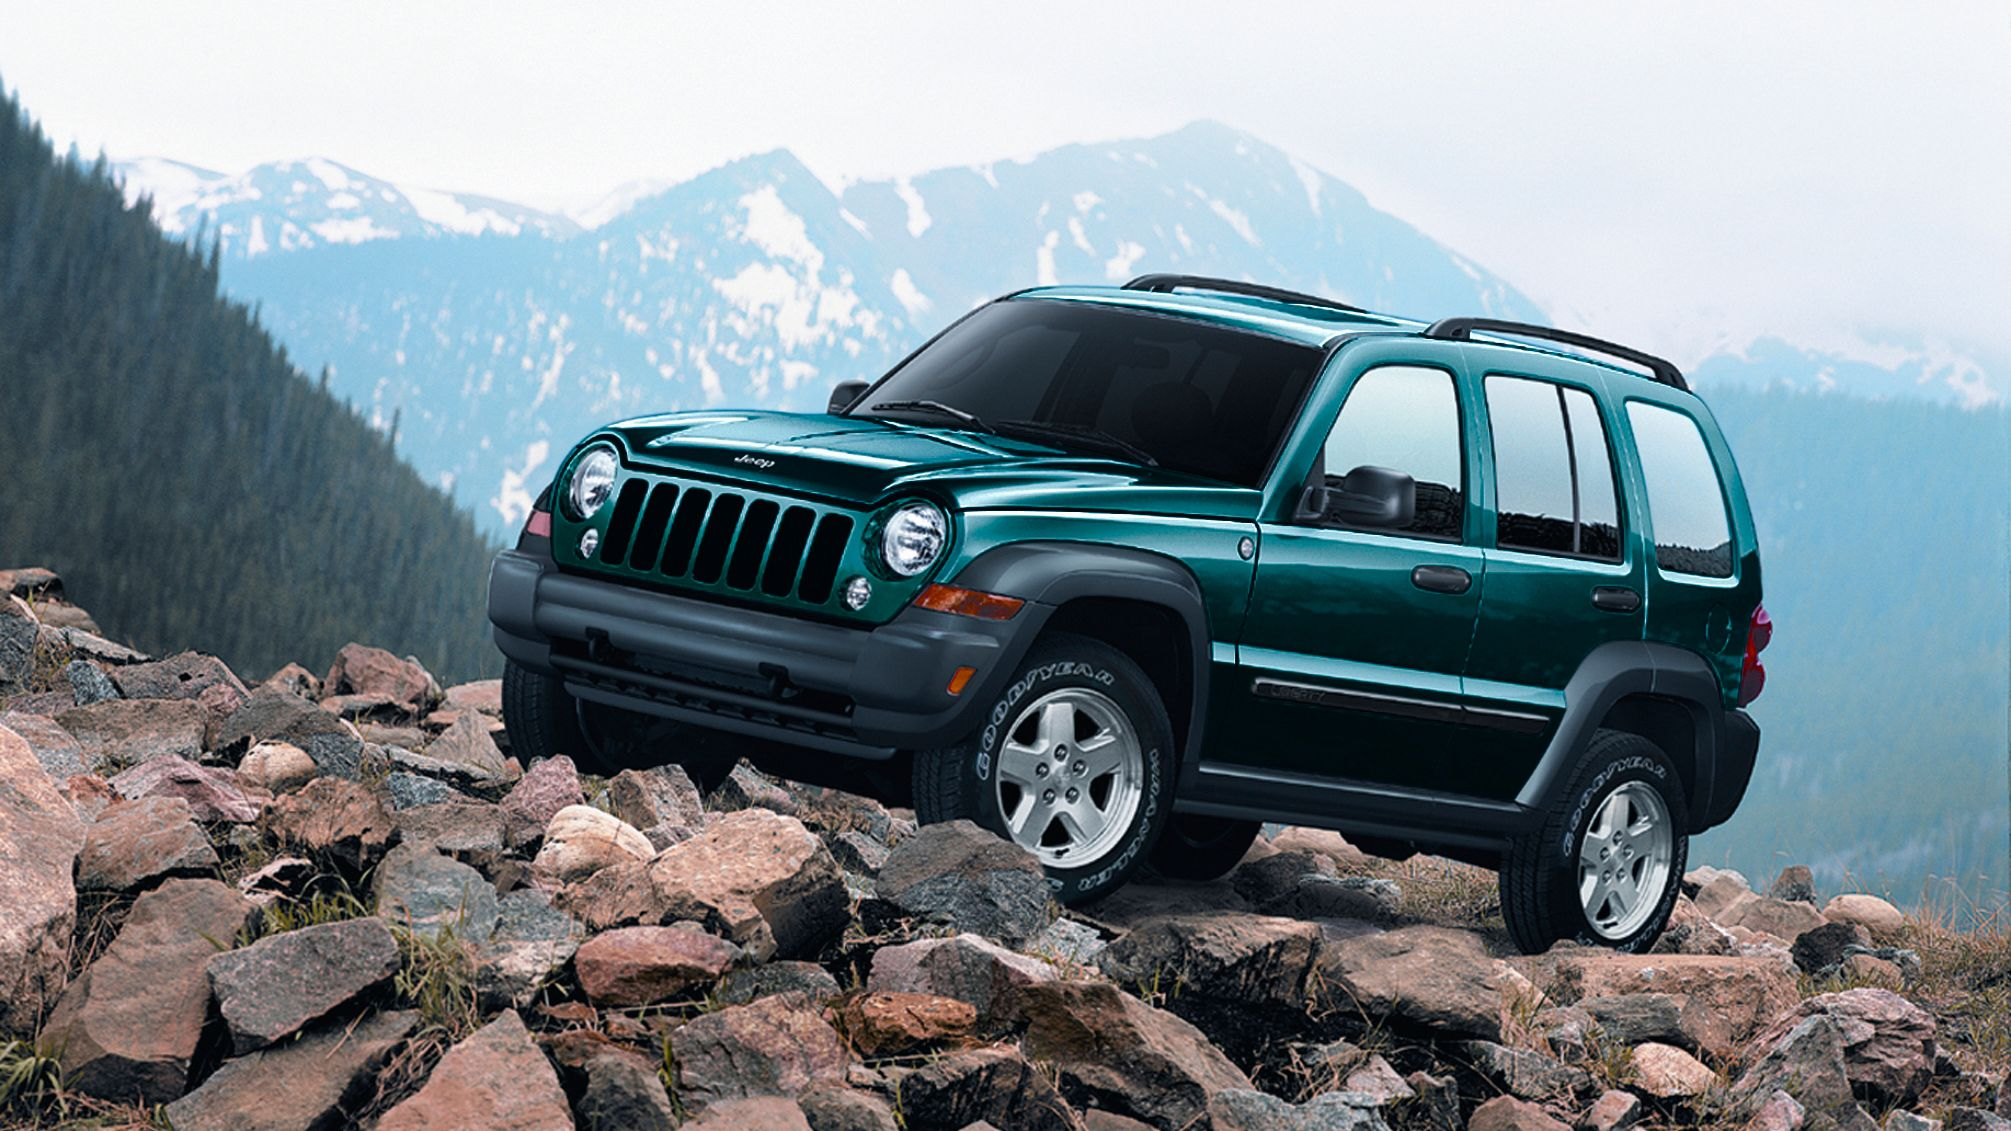 Jeep Liberty Mpg >> 2006 Jeep Liberty Limited 4x4 Crd New Suv Review